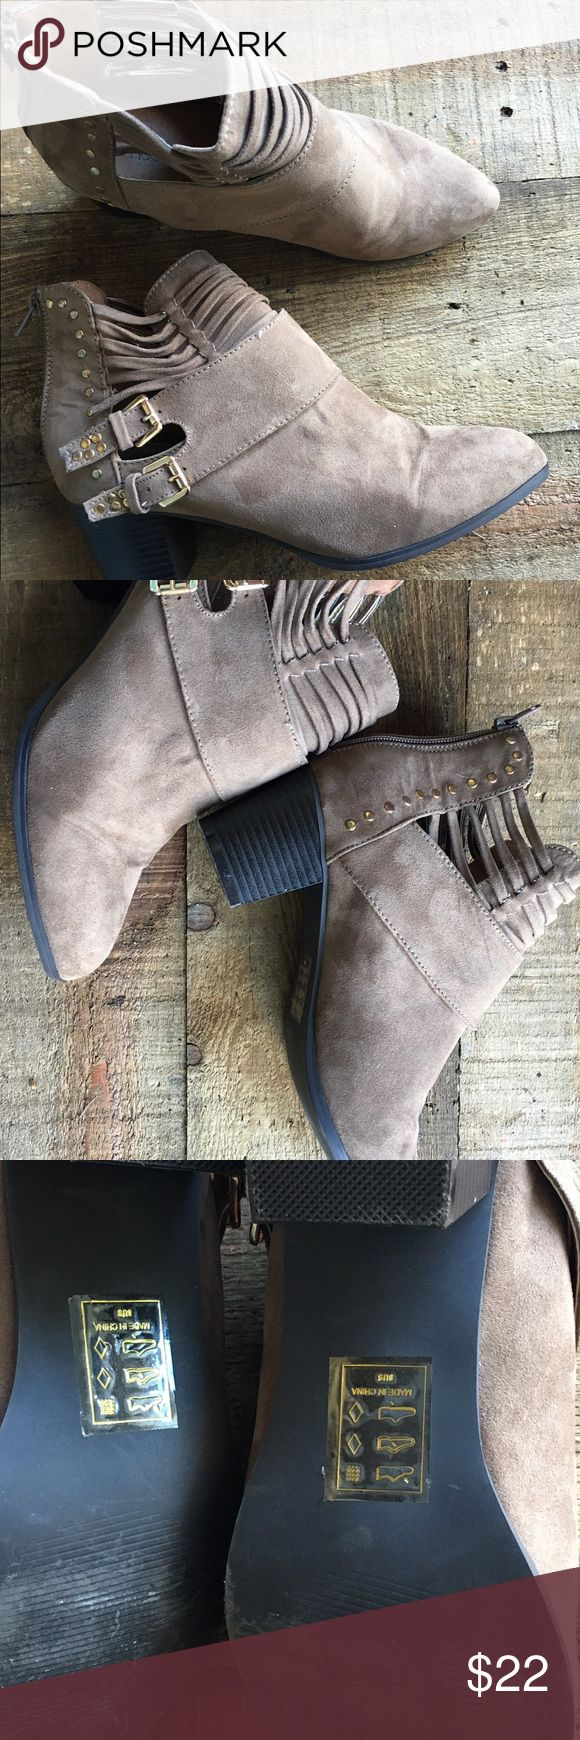 Shoe Dazzle Booties Size 8. Great shape, worn once. So cute! Shoedazzle Shoe Dazzle Shoes Ankle Boots & Booties